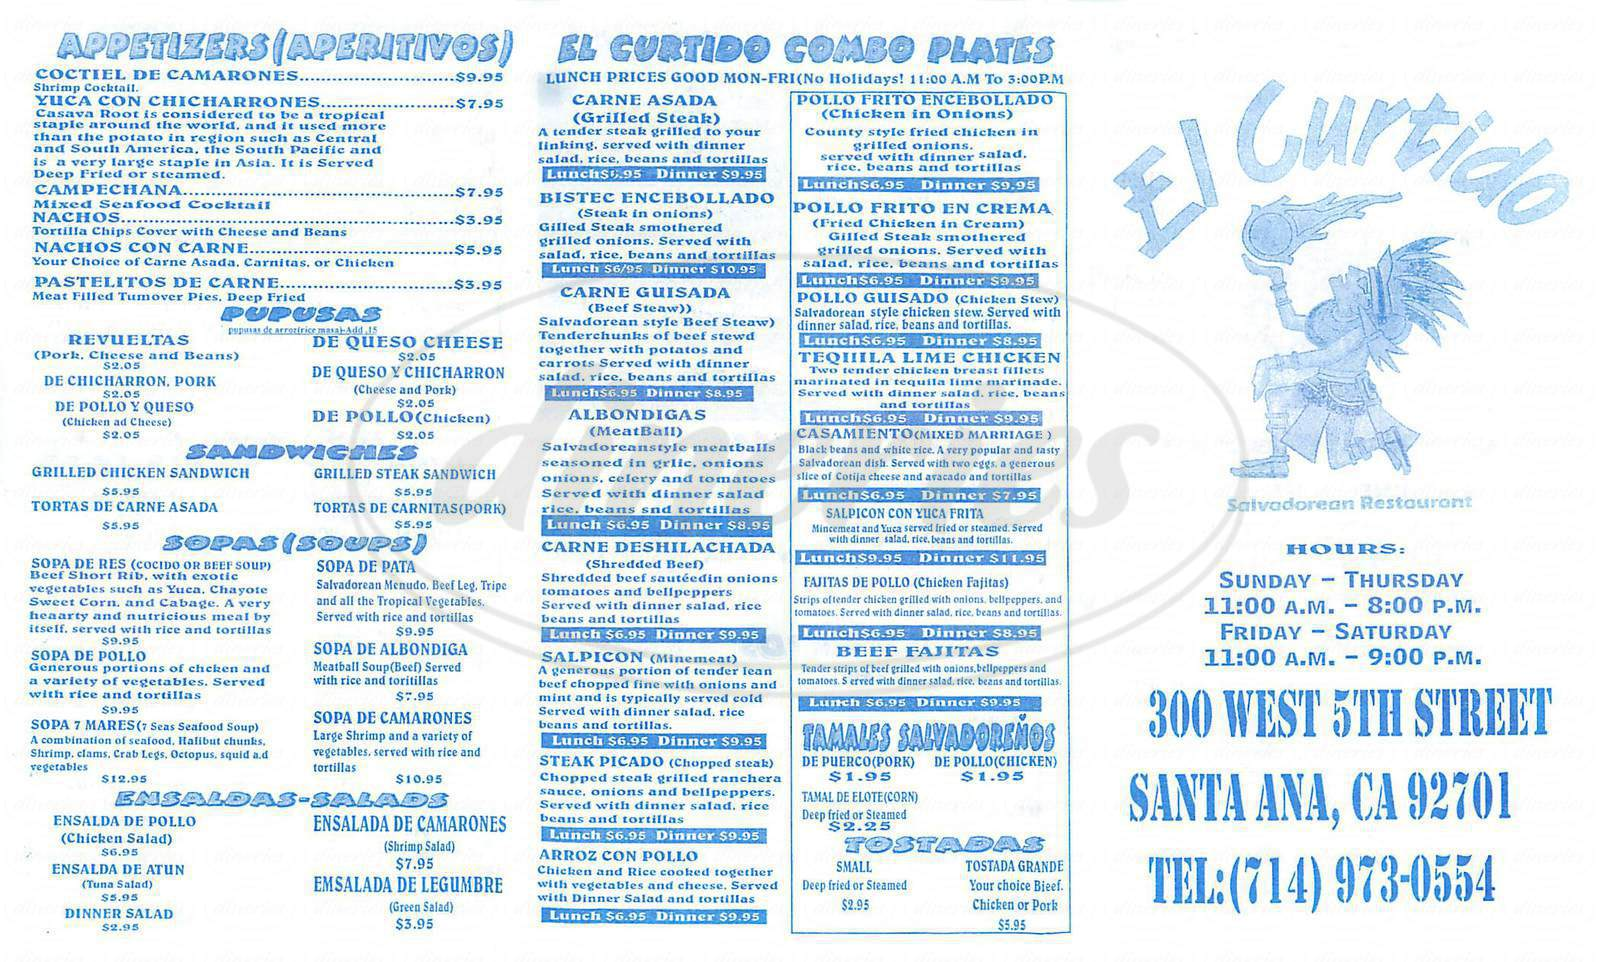 menu for El Curtido